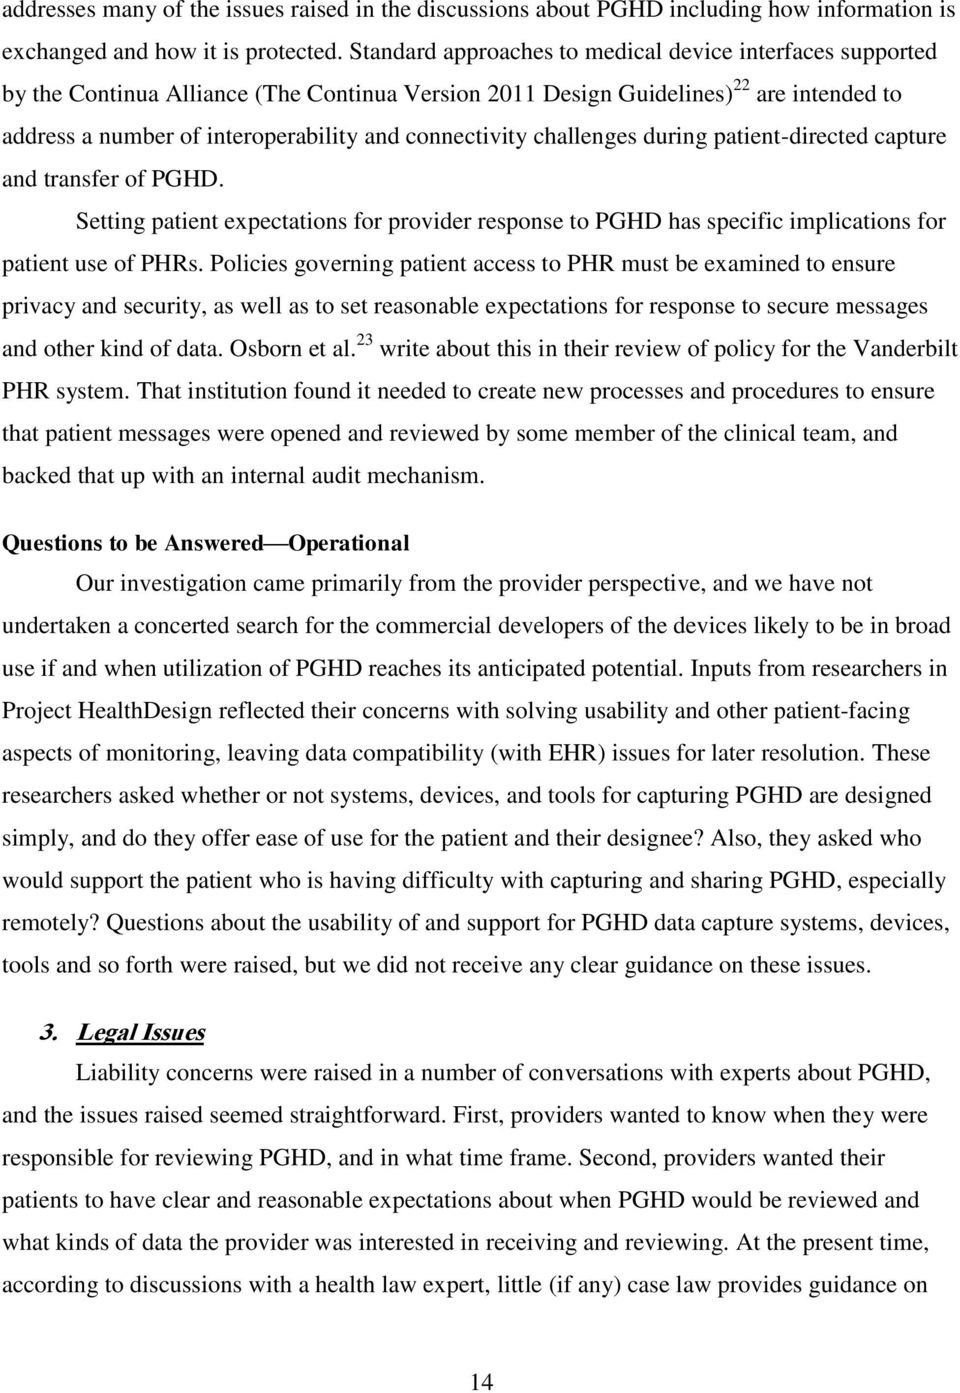 connectivity challenges during patient-directed capture and transfer of PGHD. Setting patient expectations for provider response to PGHD has specific implications for patient use of PHRs.